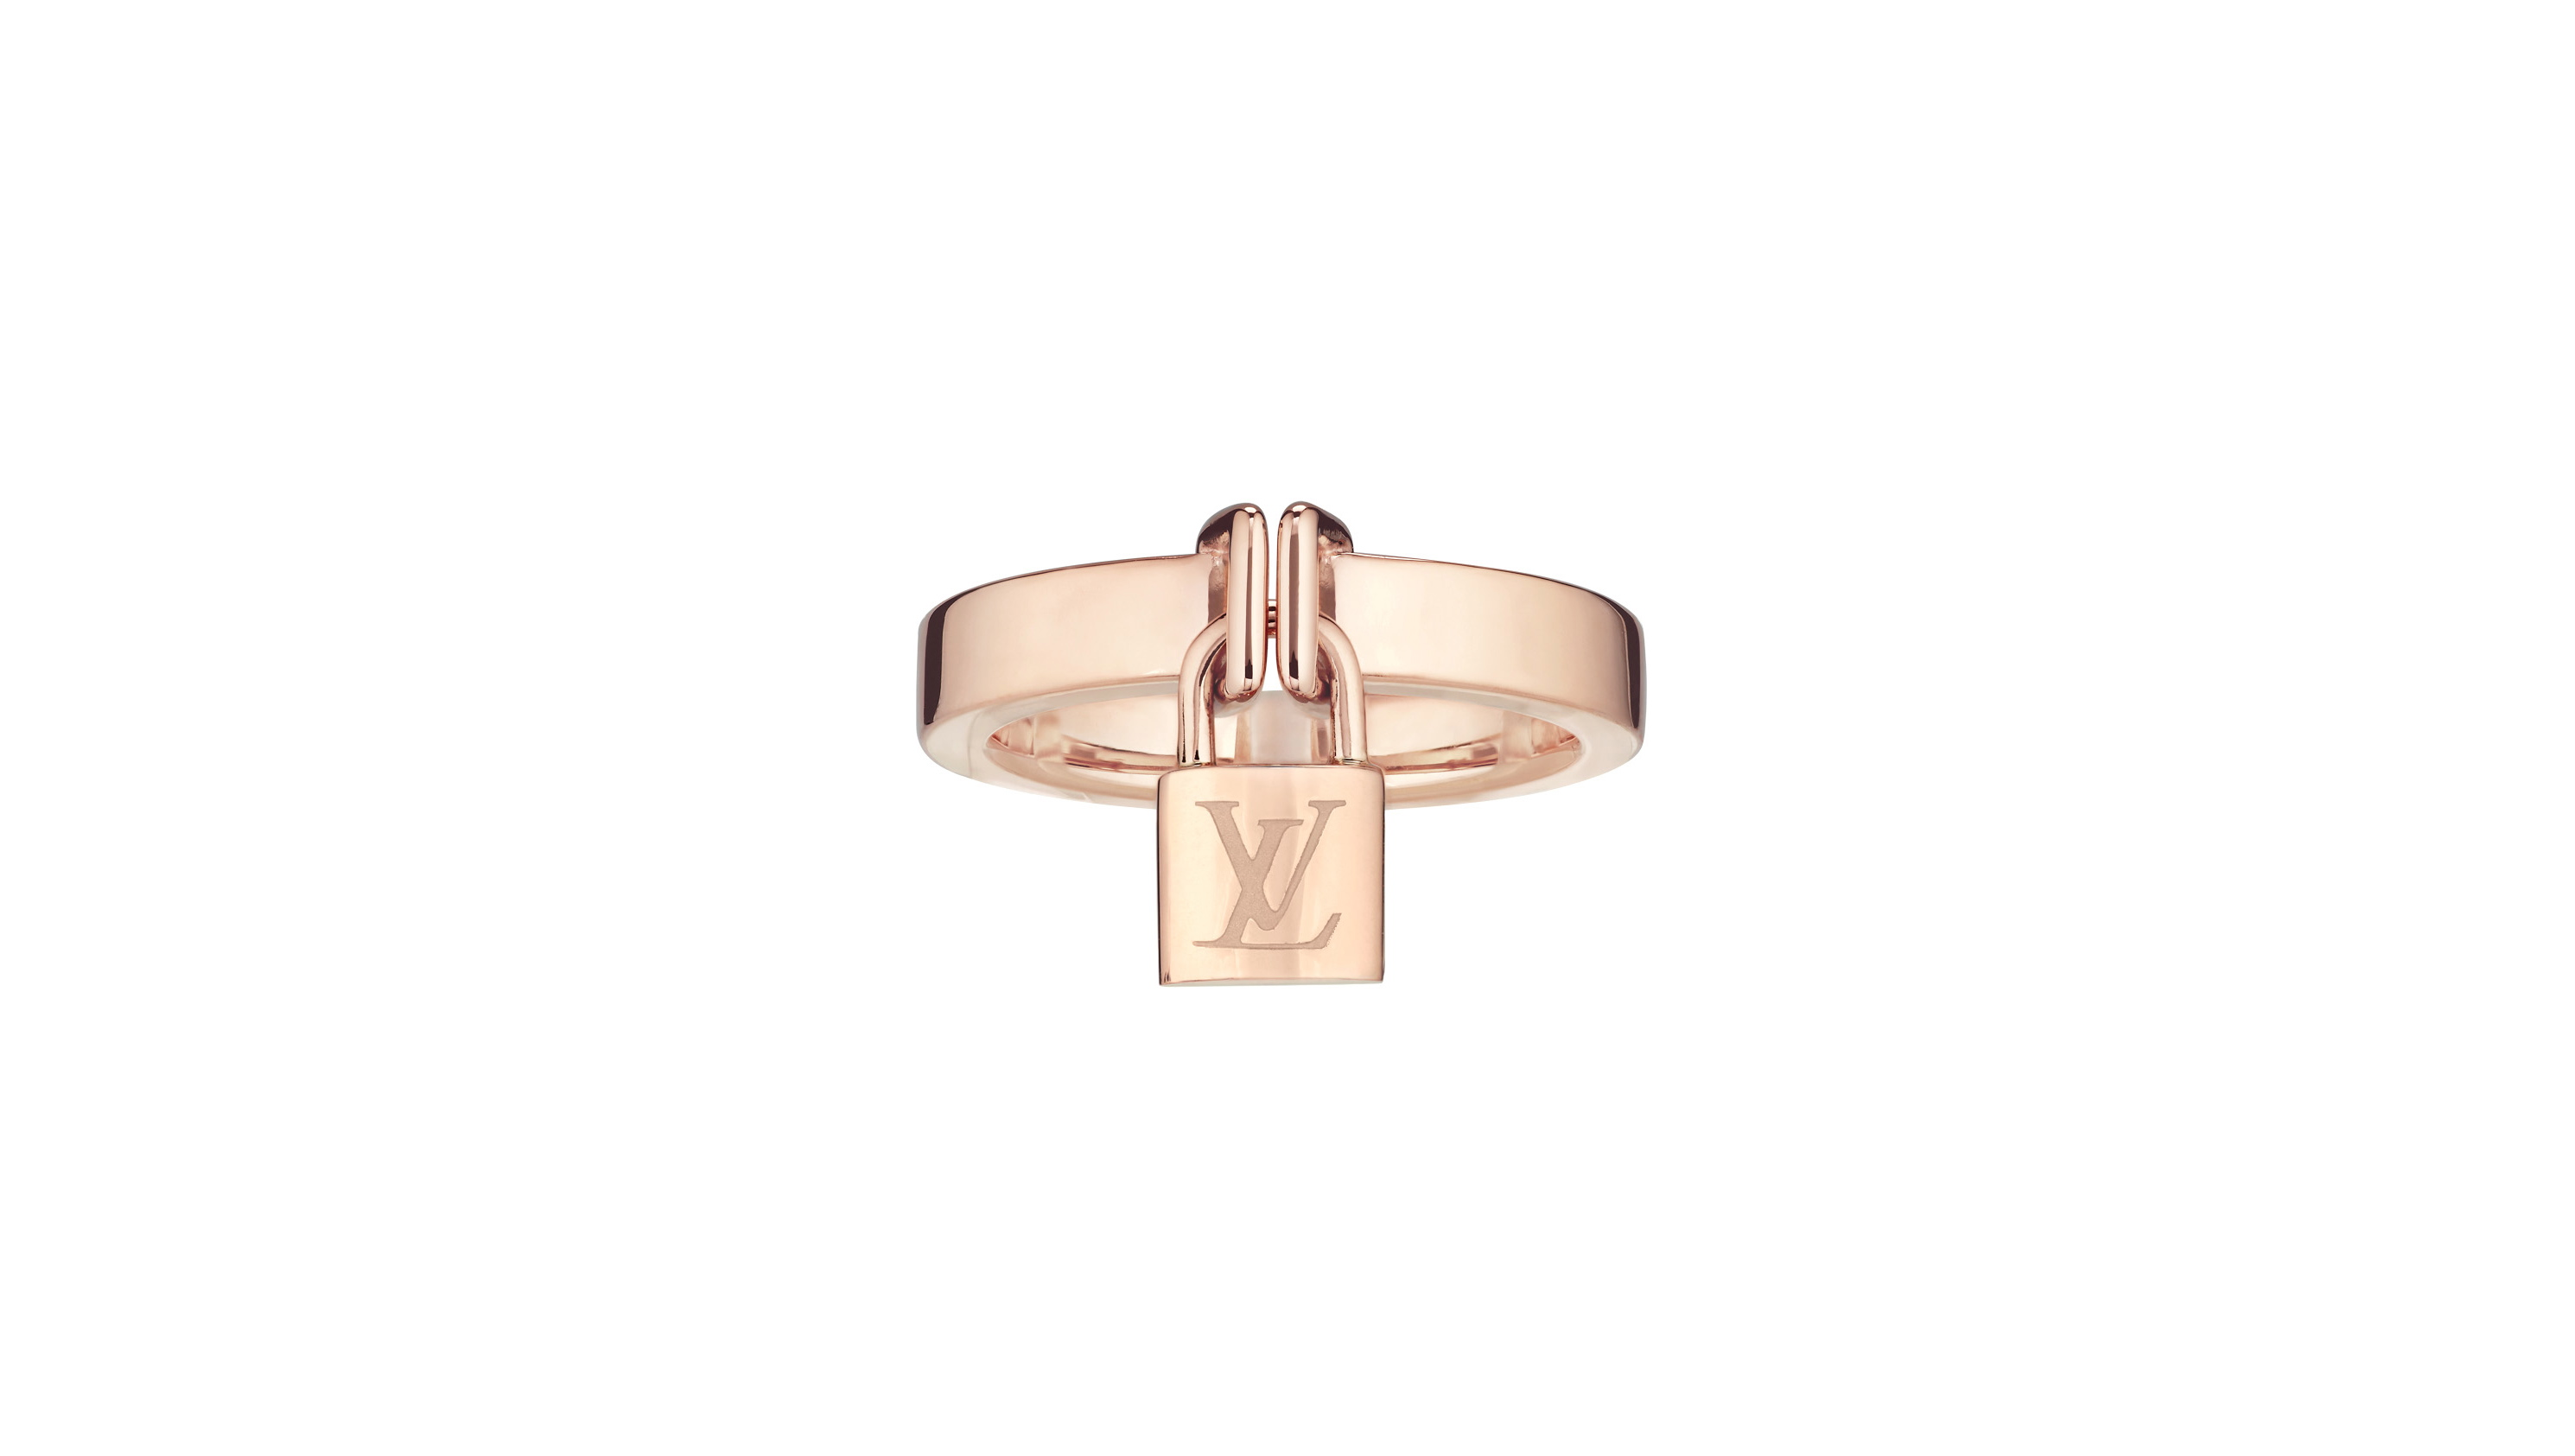 LV Lockit Ring in pink gold